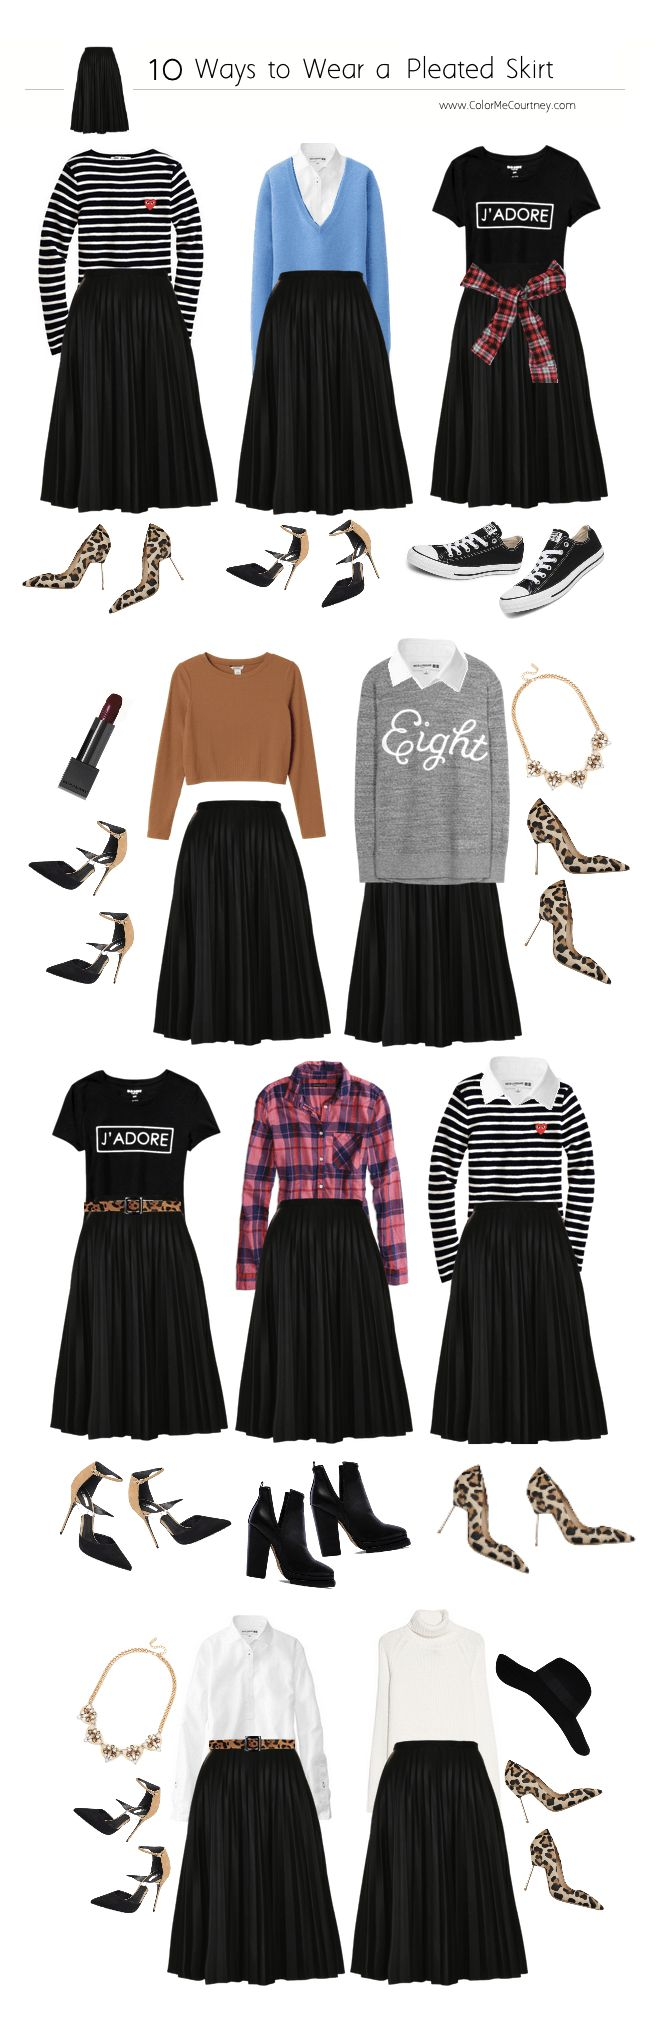 100 outfits create 100 outfits from 10 pieces 10 pieces 100 outfits what to wear for fall fall style guide fall shopping guide what to buy fro fall fall fashion fall fashion guide how to dress for fall what to wear for fall fall fashion guide how to wear a pleated skirt 10 ways to wear a pleated skirt ten ways to wear leather pleated skirt leather pleeted skirt leather pleat skirt